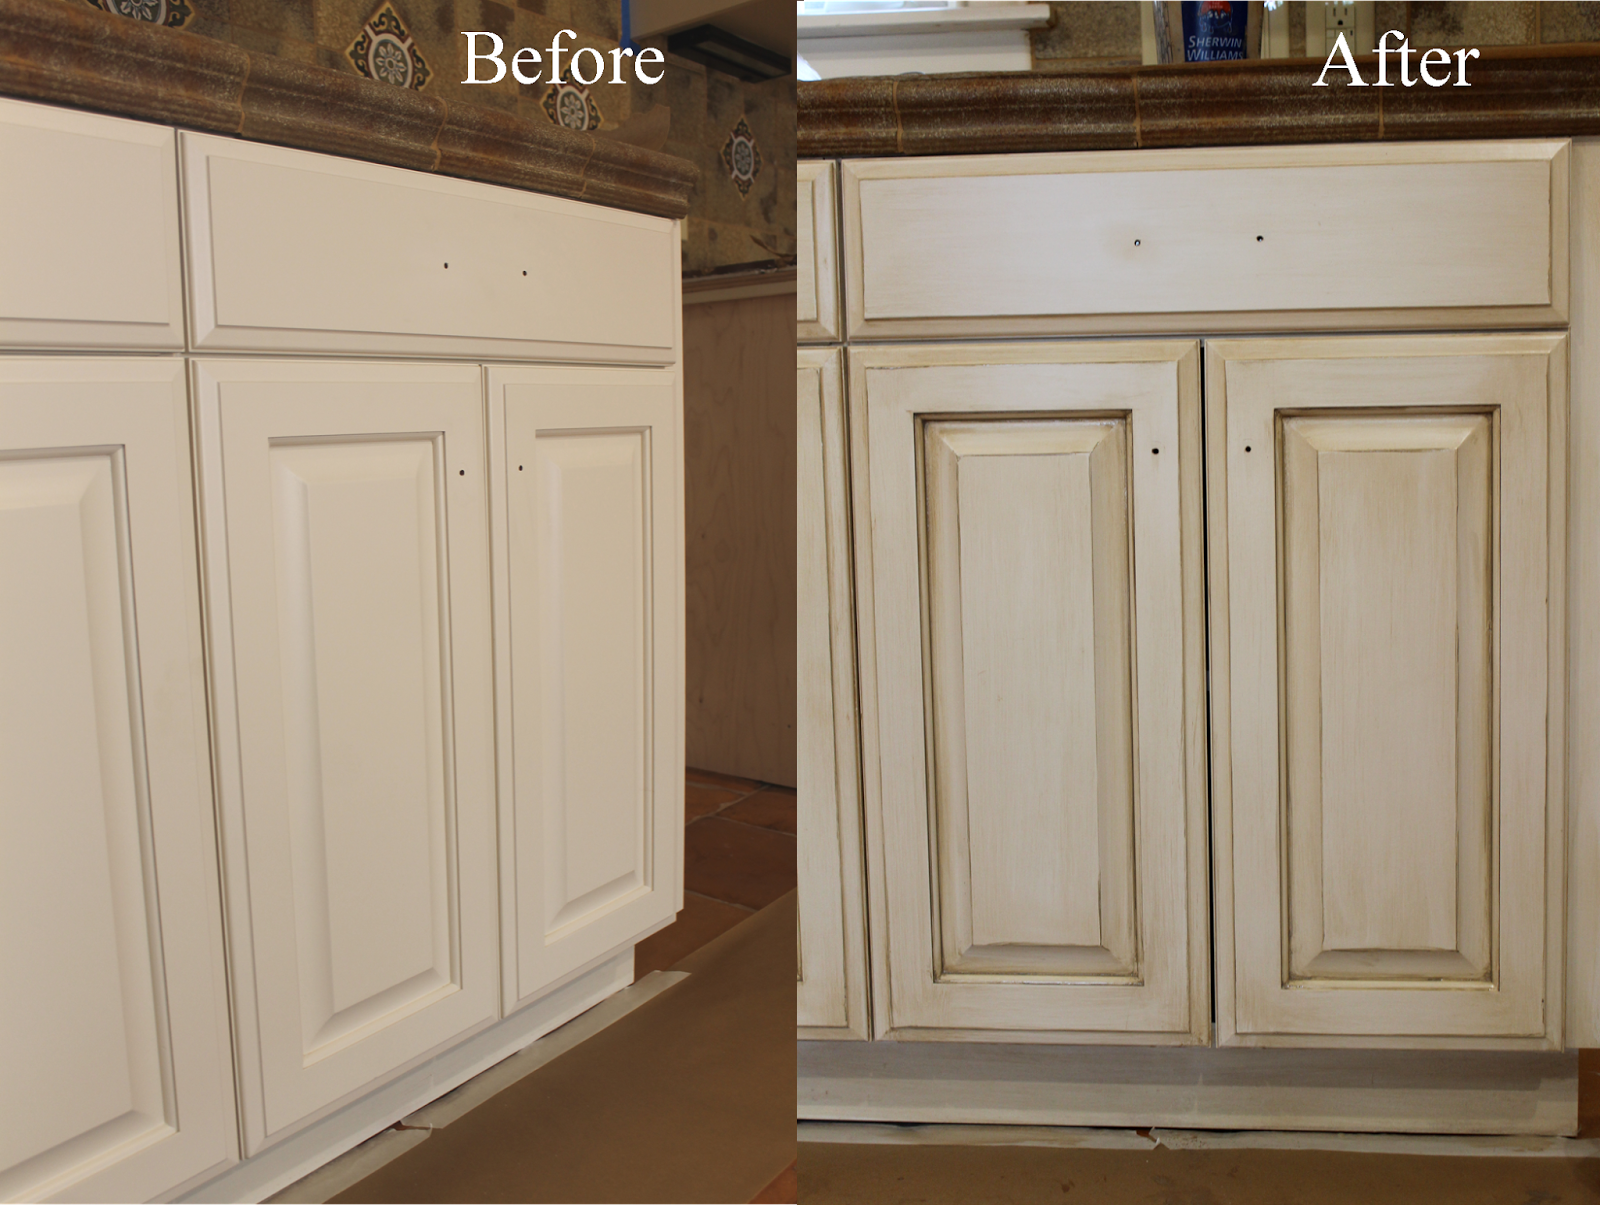 Before and afterGlazingantiquing cabinets A complete how to